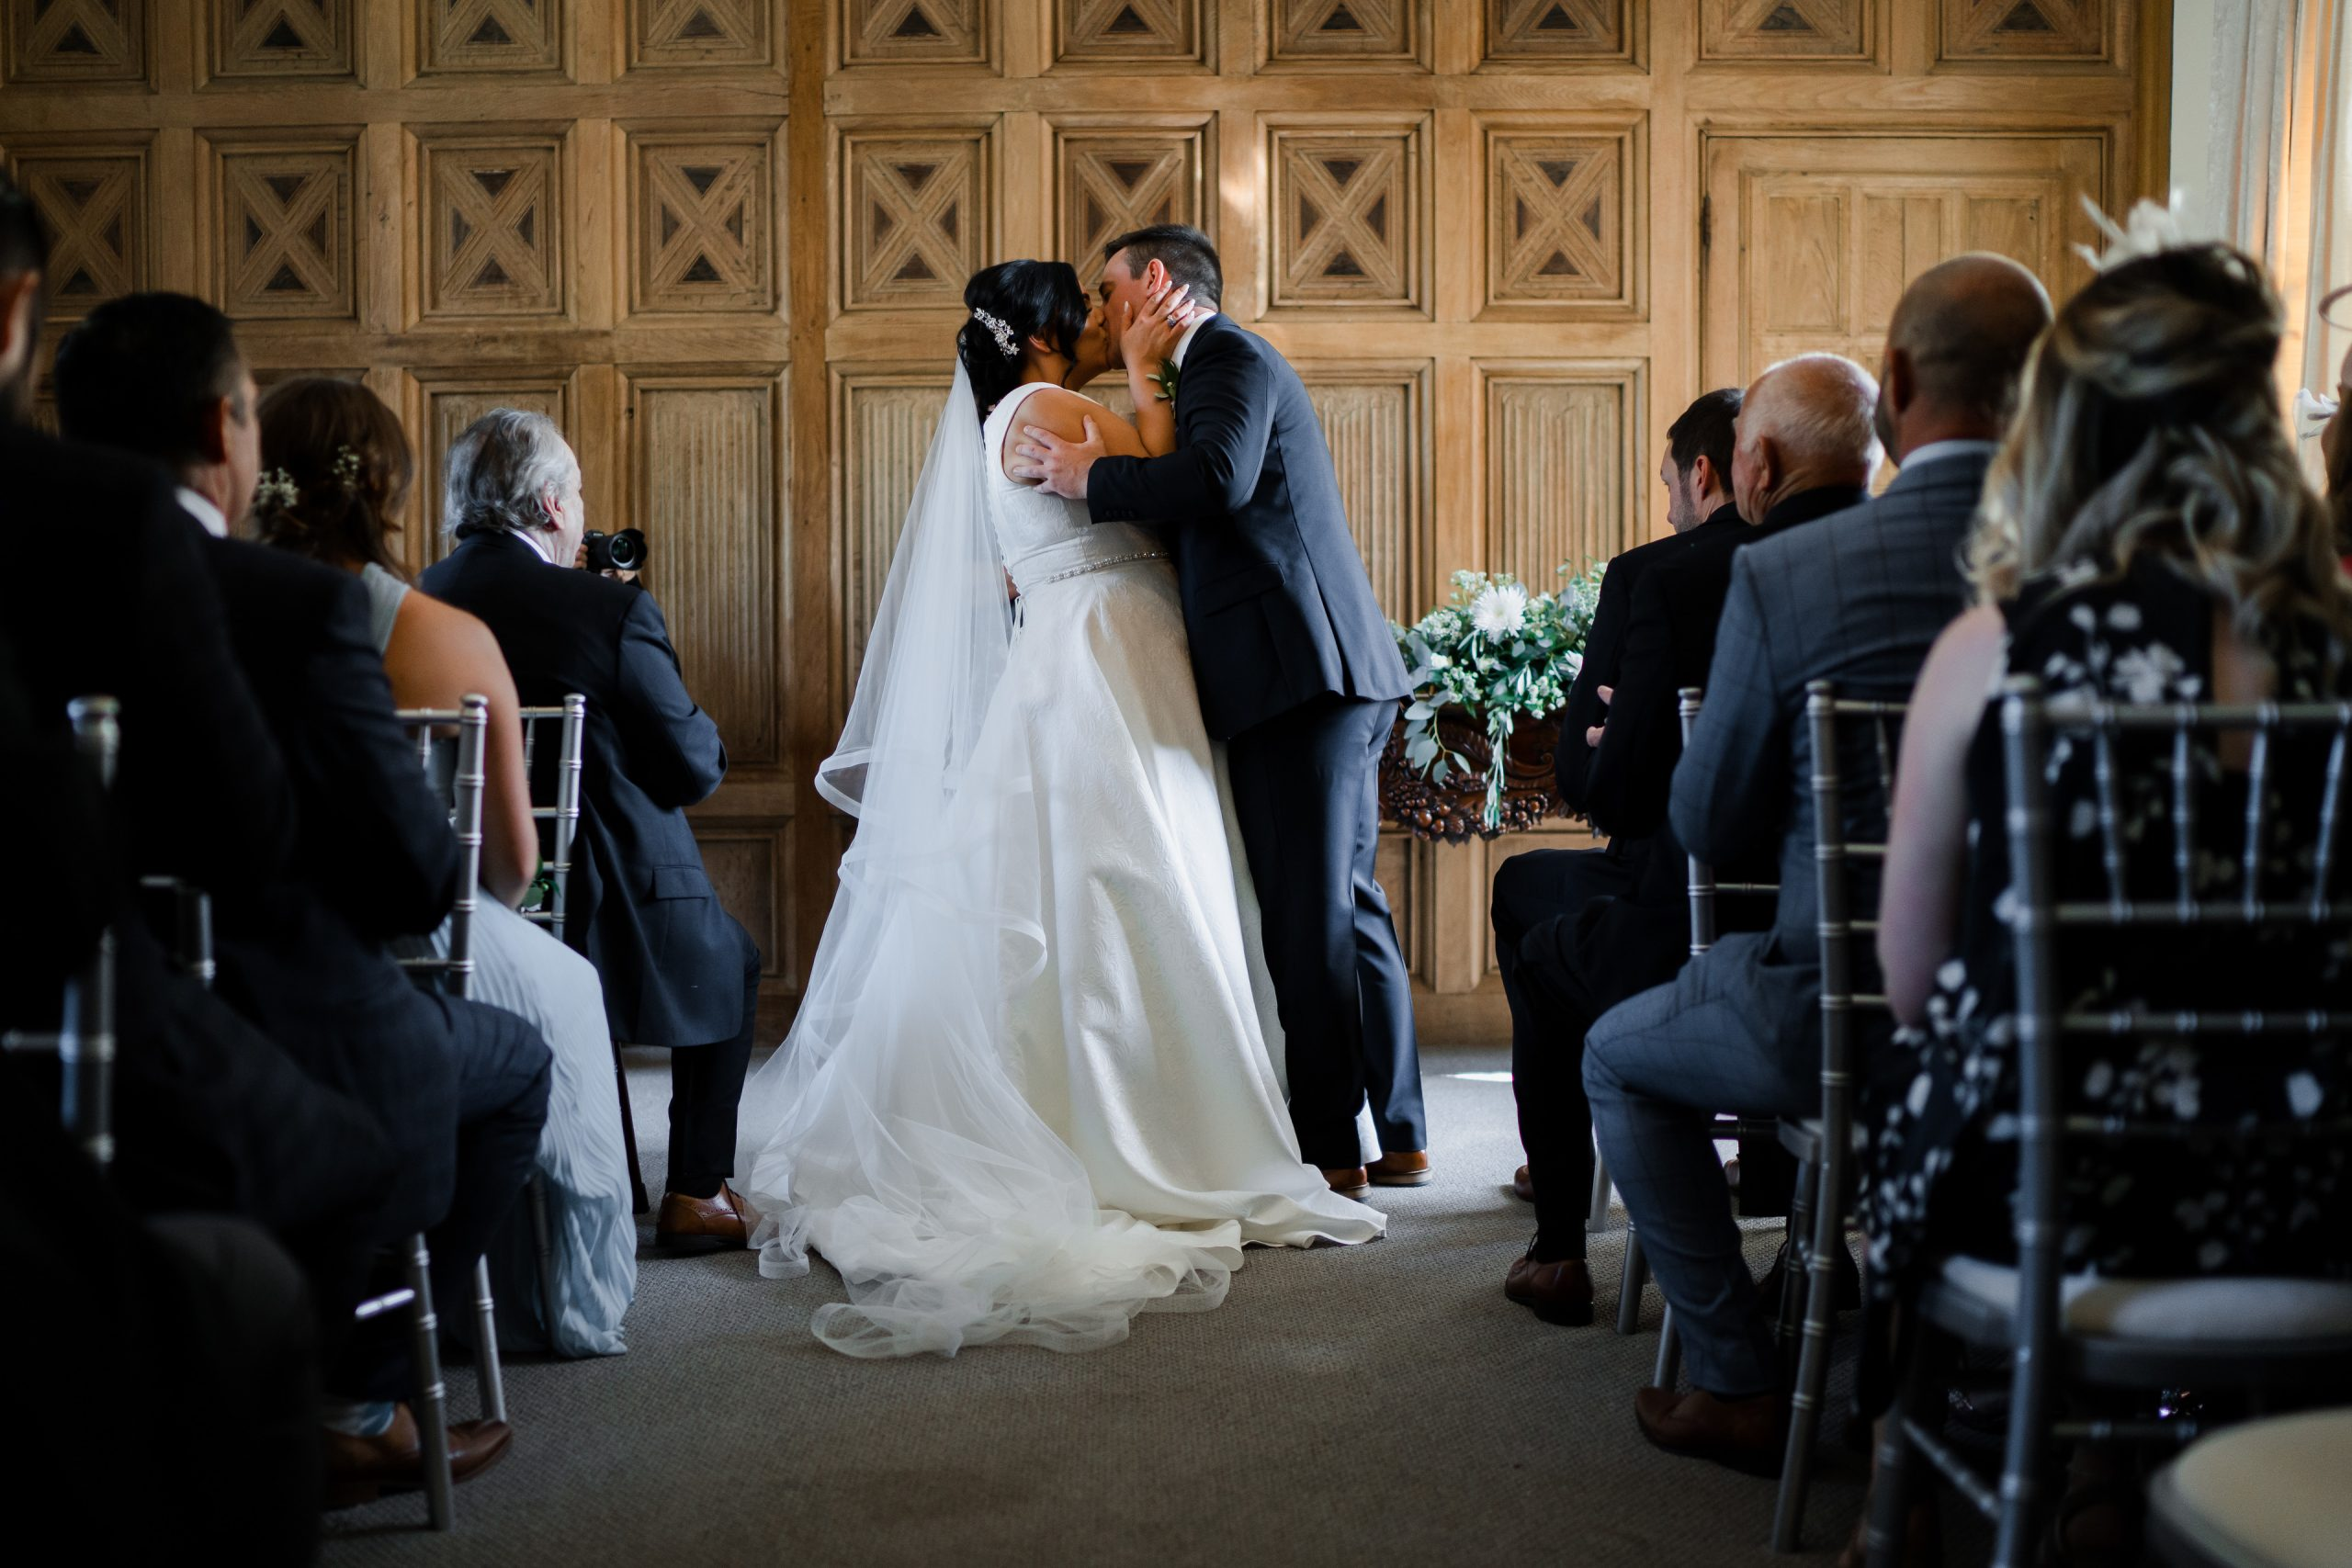 Bride and groom first kiss wedding photo - South Wales wedding photography